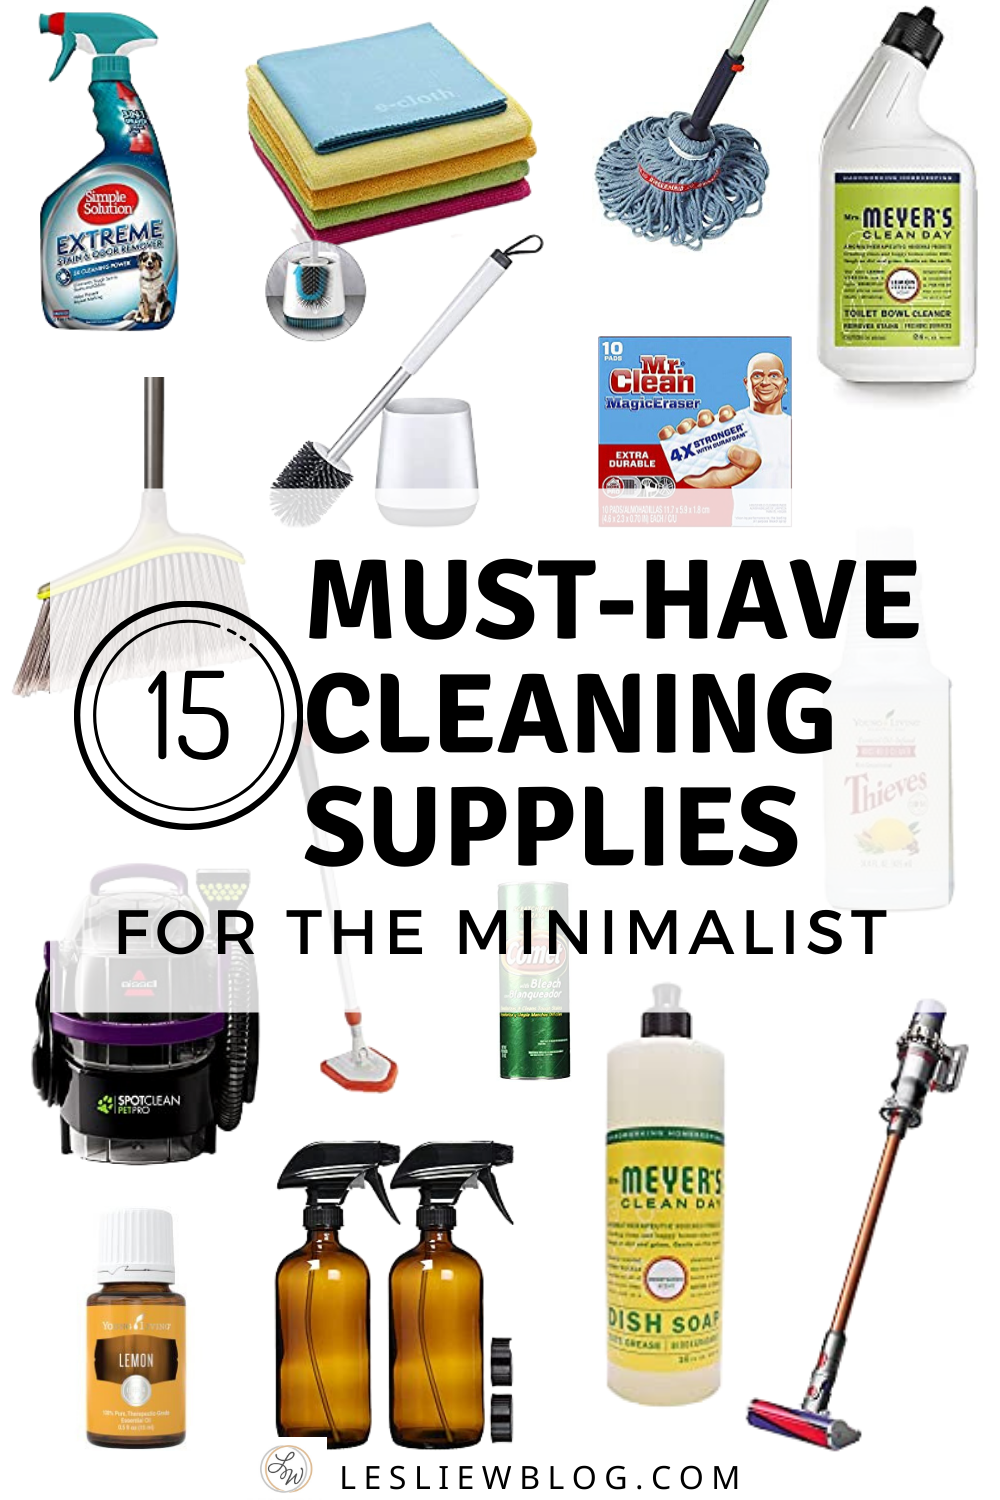 The Only Cleaning Supplies You Will Ever Need According To A Type A Minimalist Cleaning Supplies List Cleaning Supplies Checklist Bathroom Cleaning Supplies